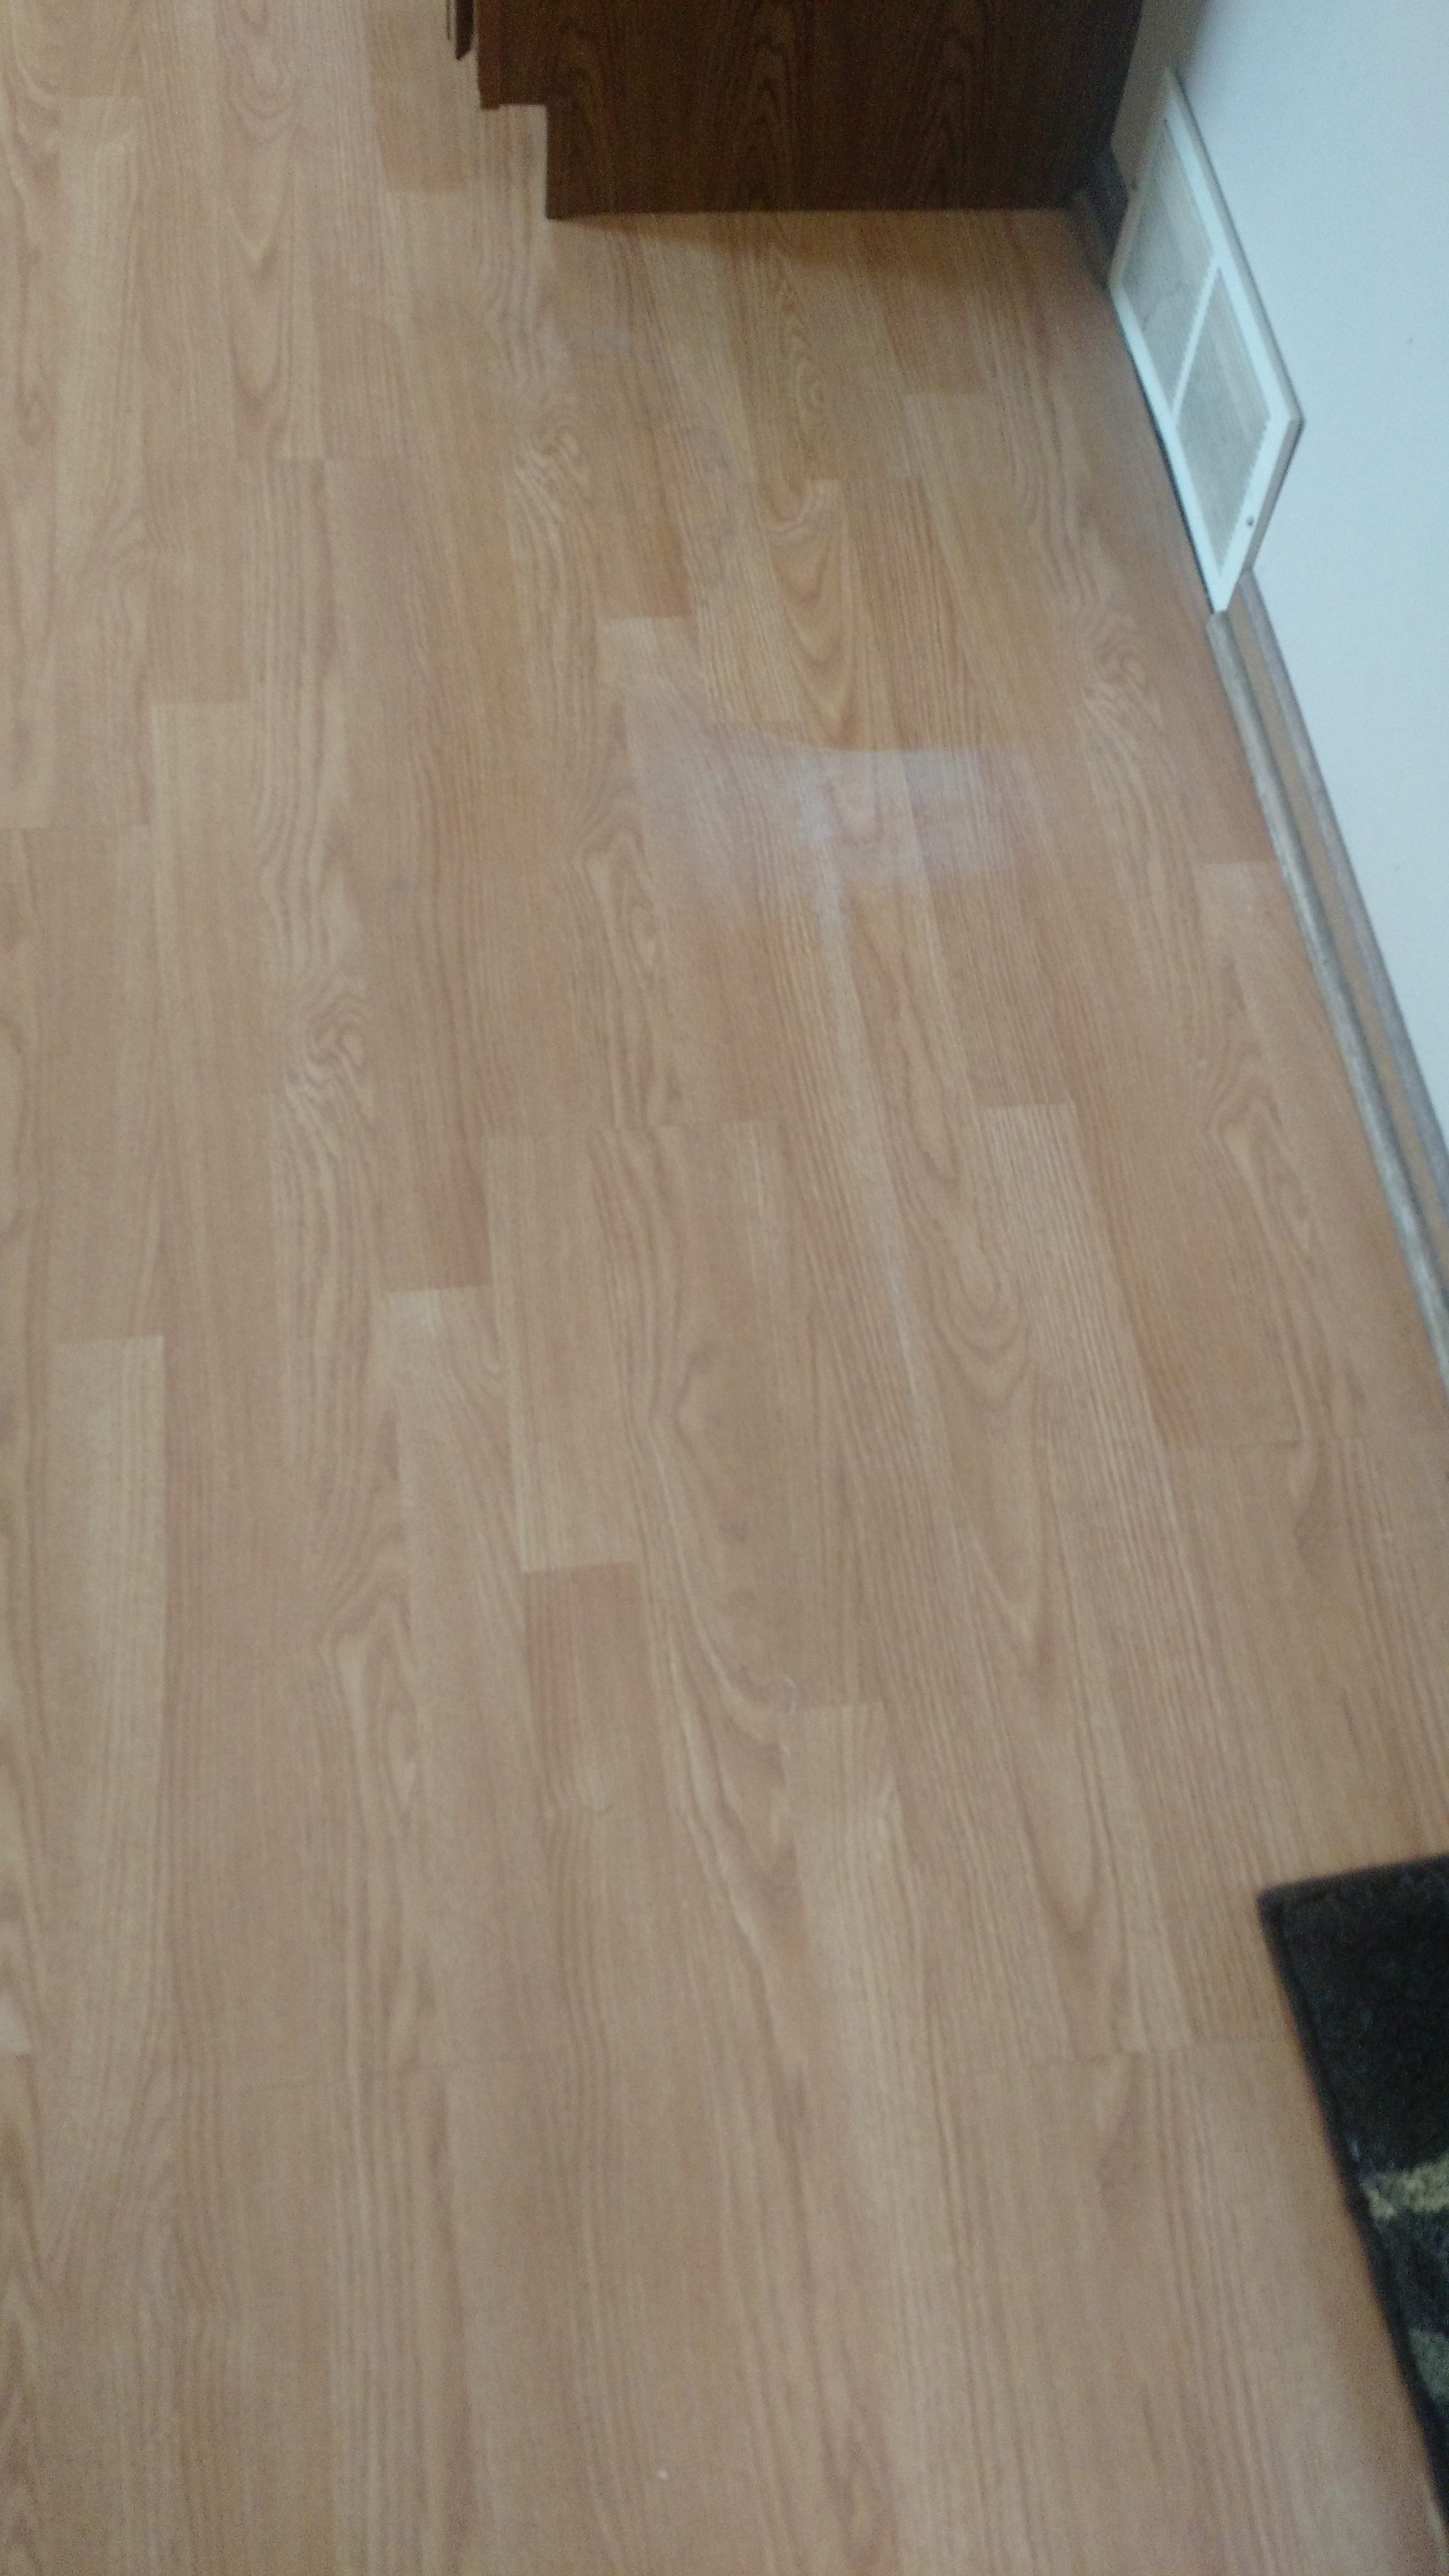 Hardwood floor deep cleaning rvr services for Laminate flooring services